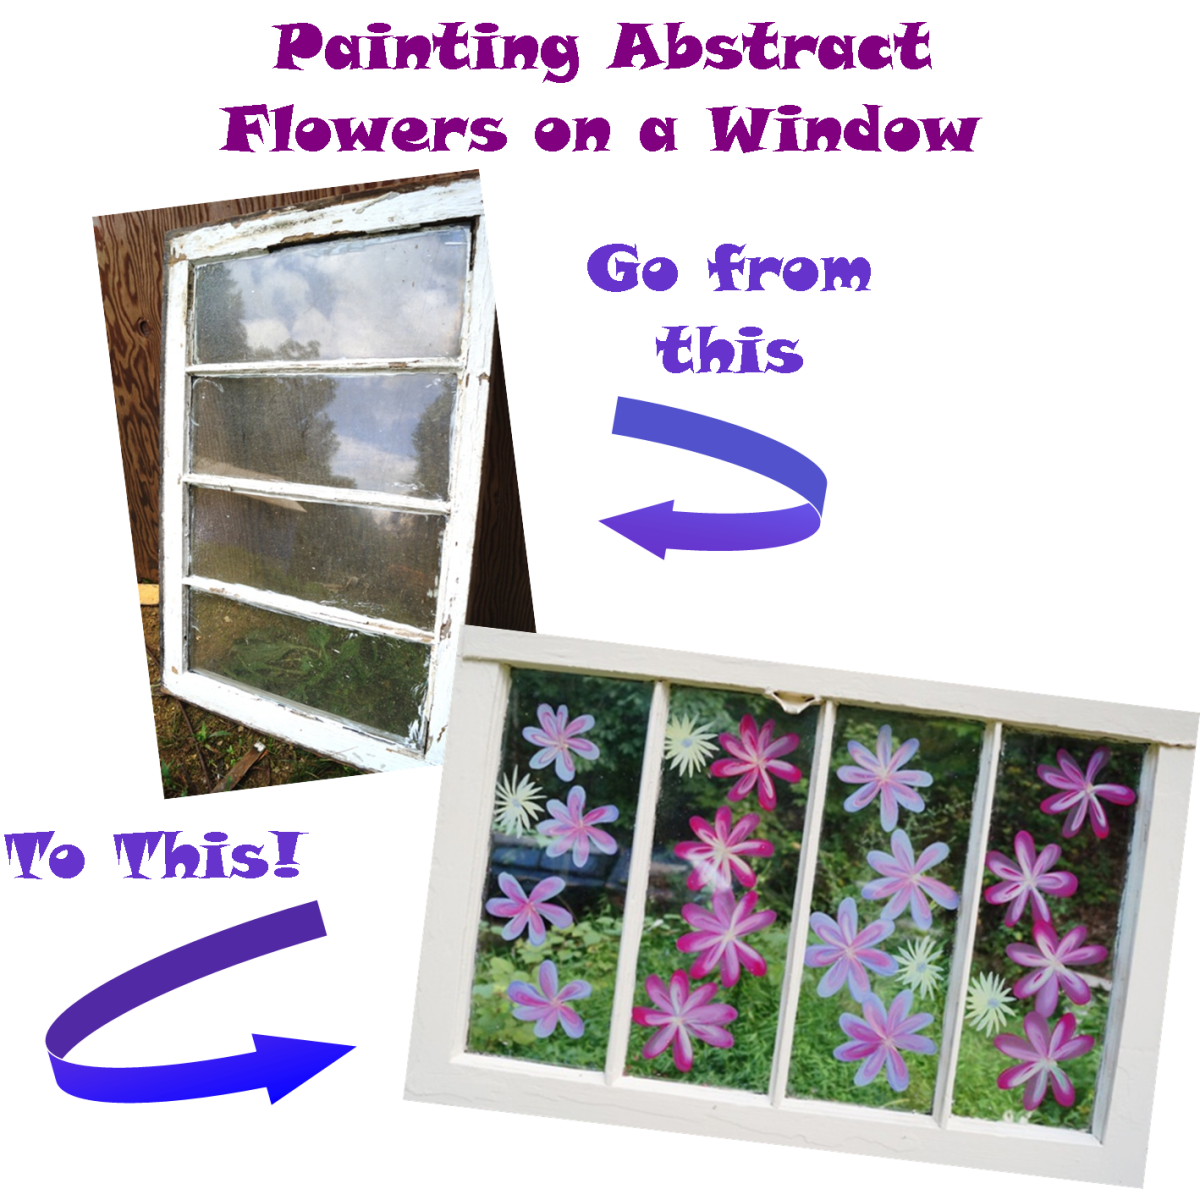 Dress up an old window with fun flowers!